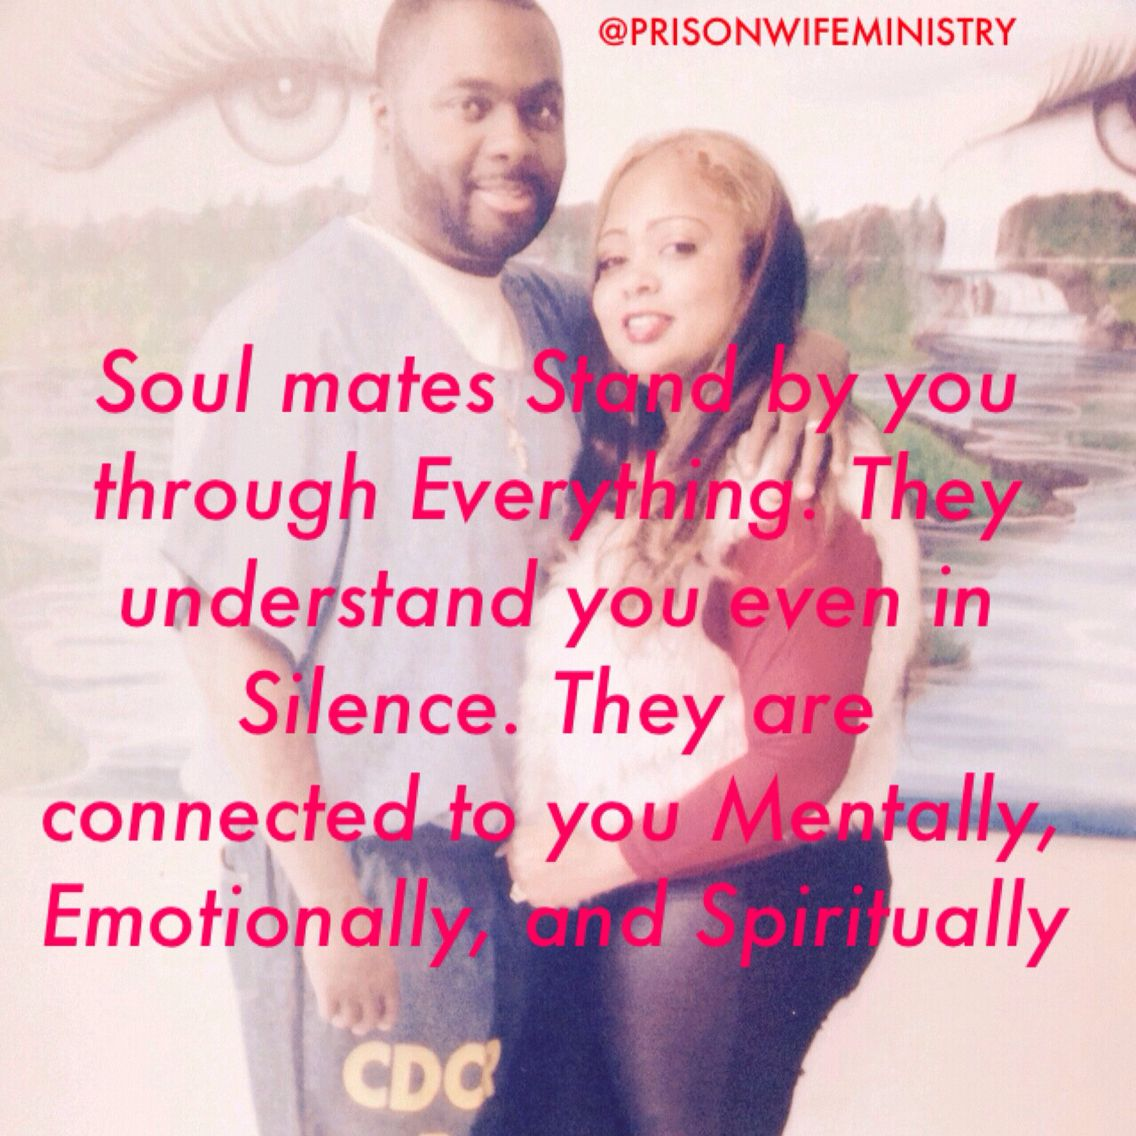 Soul mates Stand by you through Everything. They understand you even in Silence. They are connected to you Mentally, Emotionally, and Spiritually